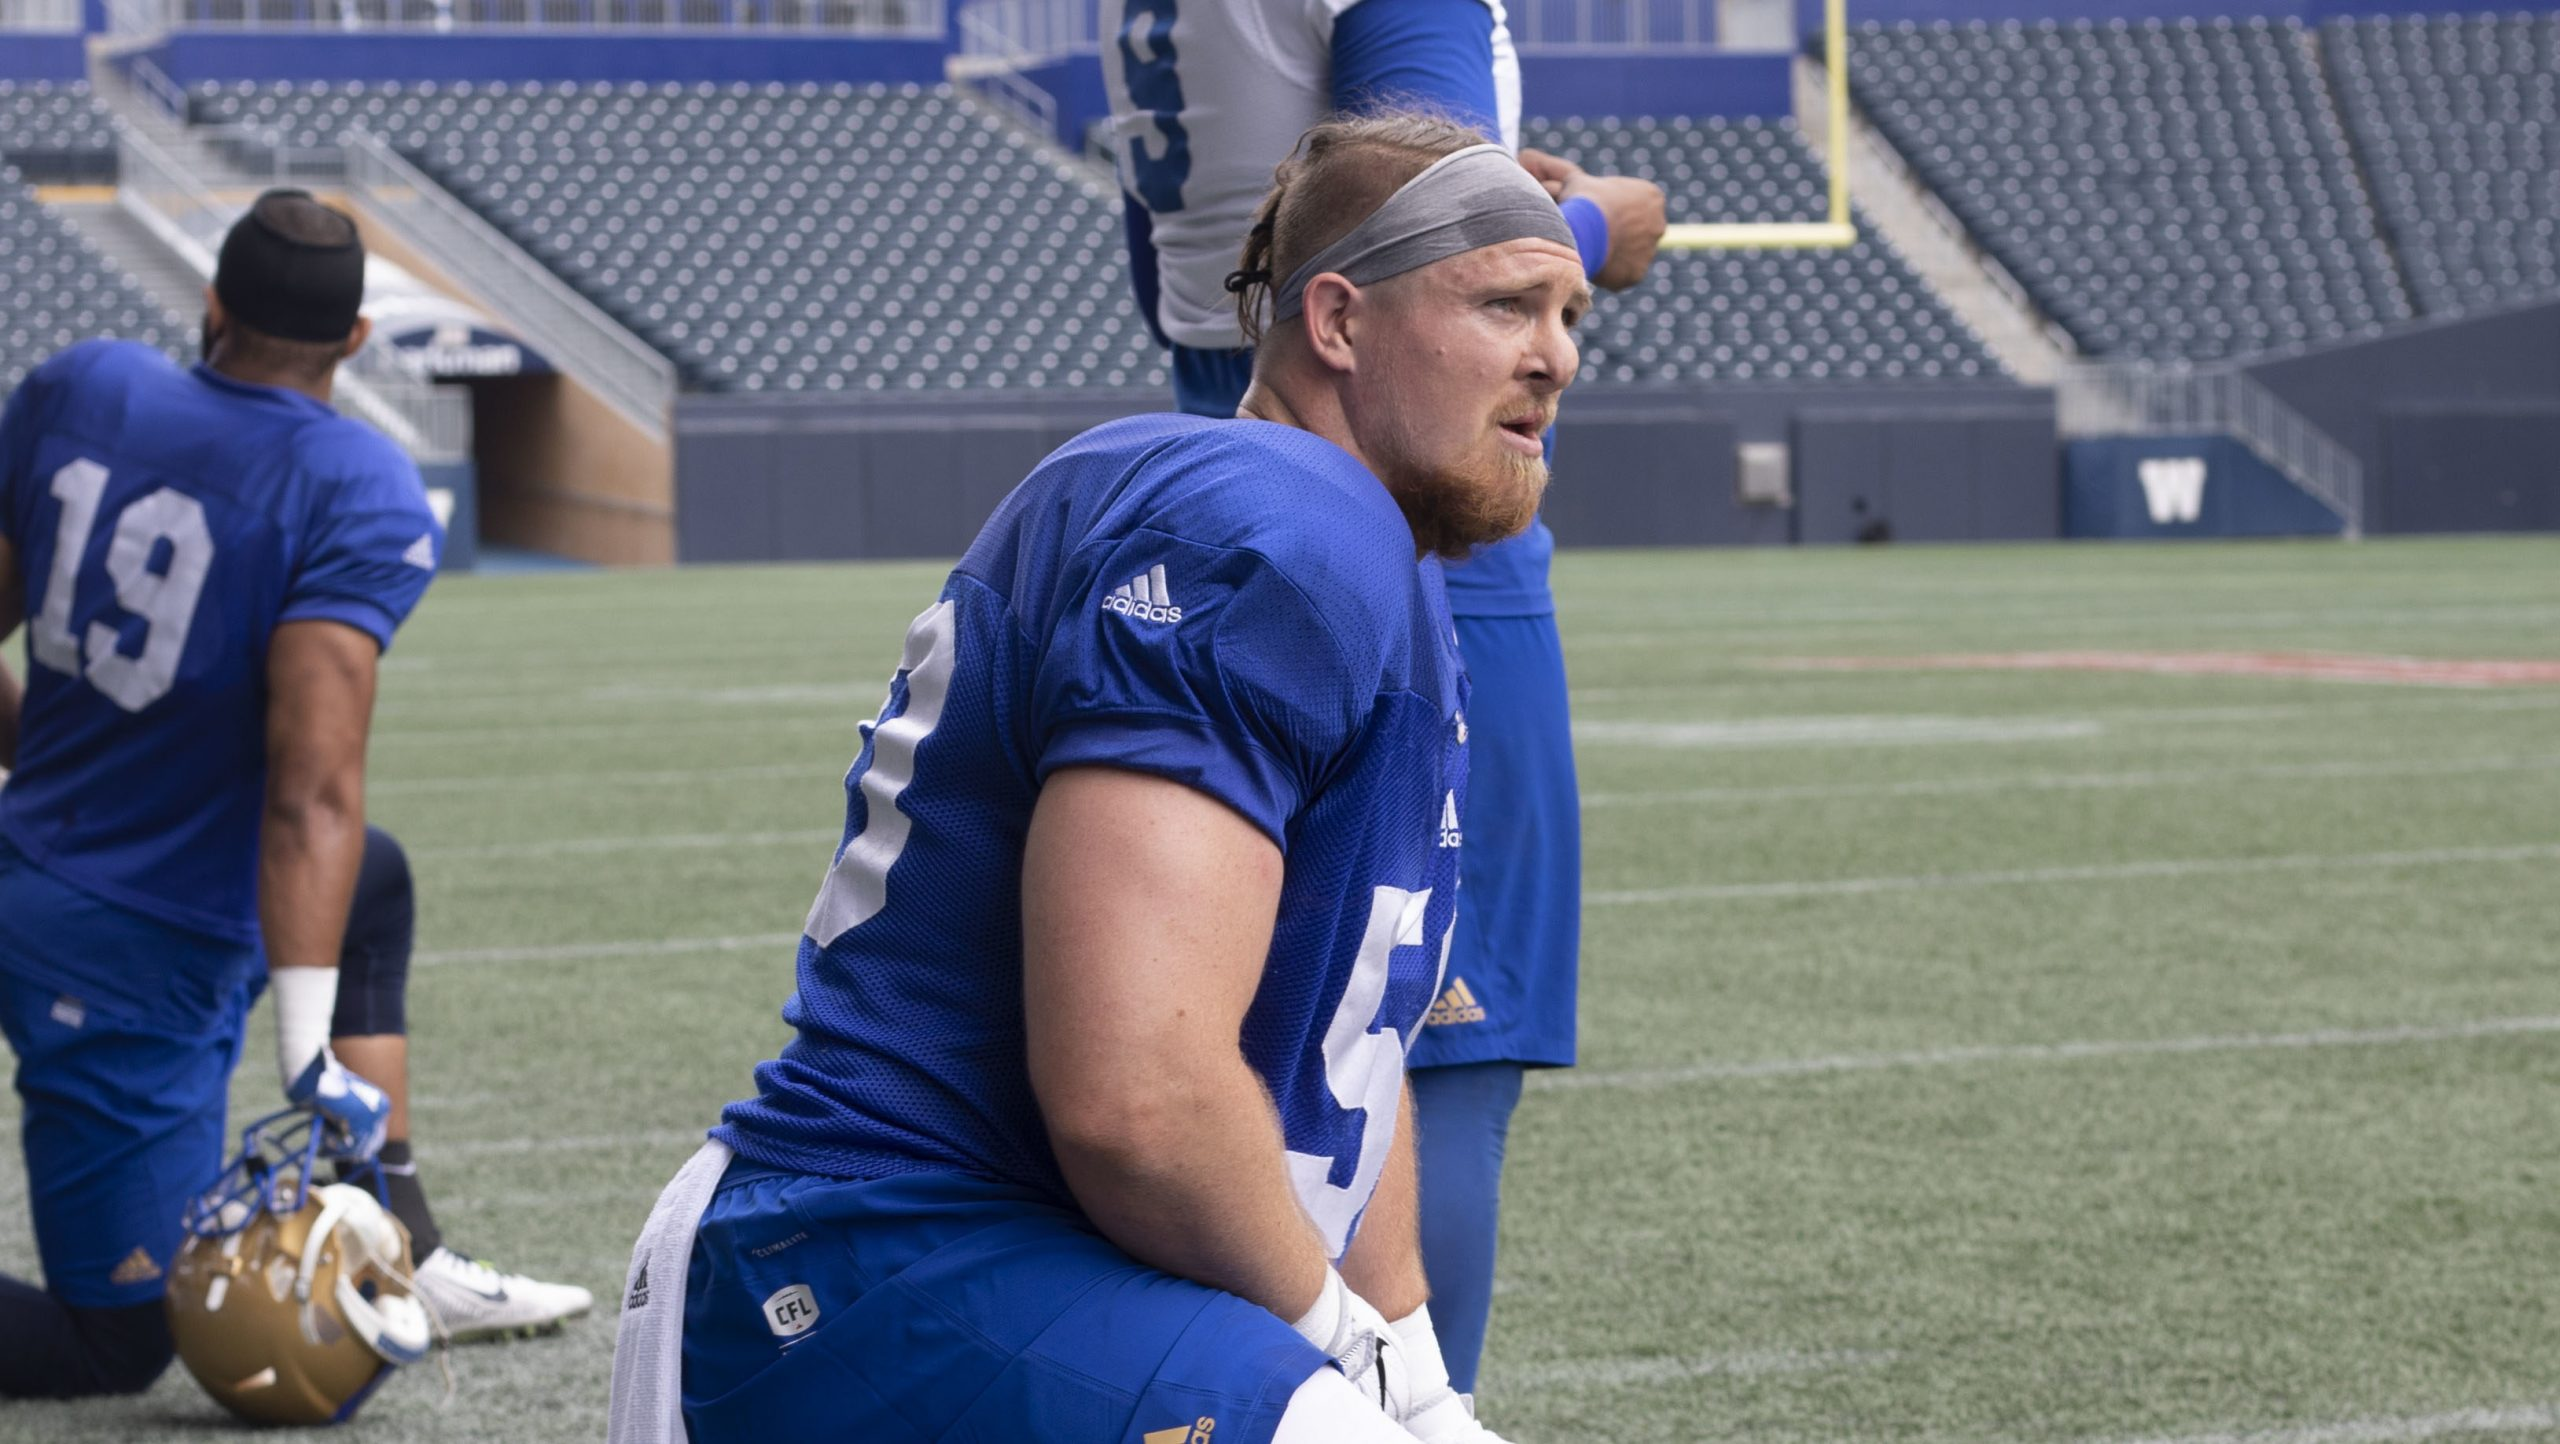 INTERVIEW: Winnipeg Blue Bombers linebacker Adam Bighill